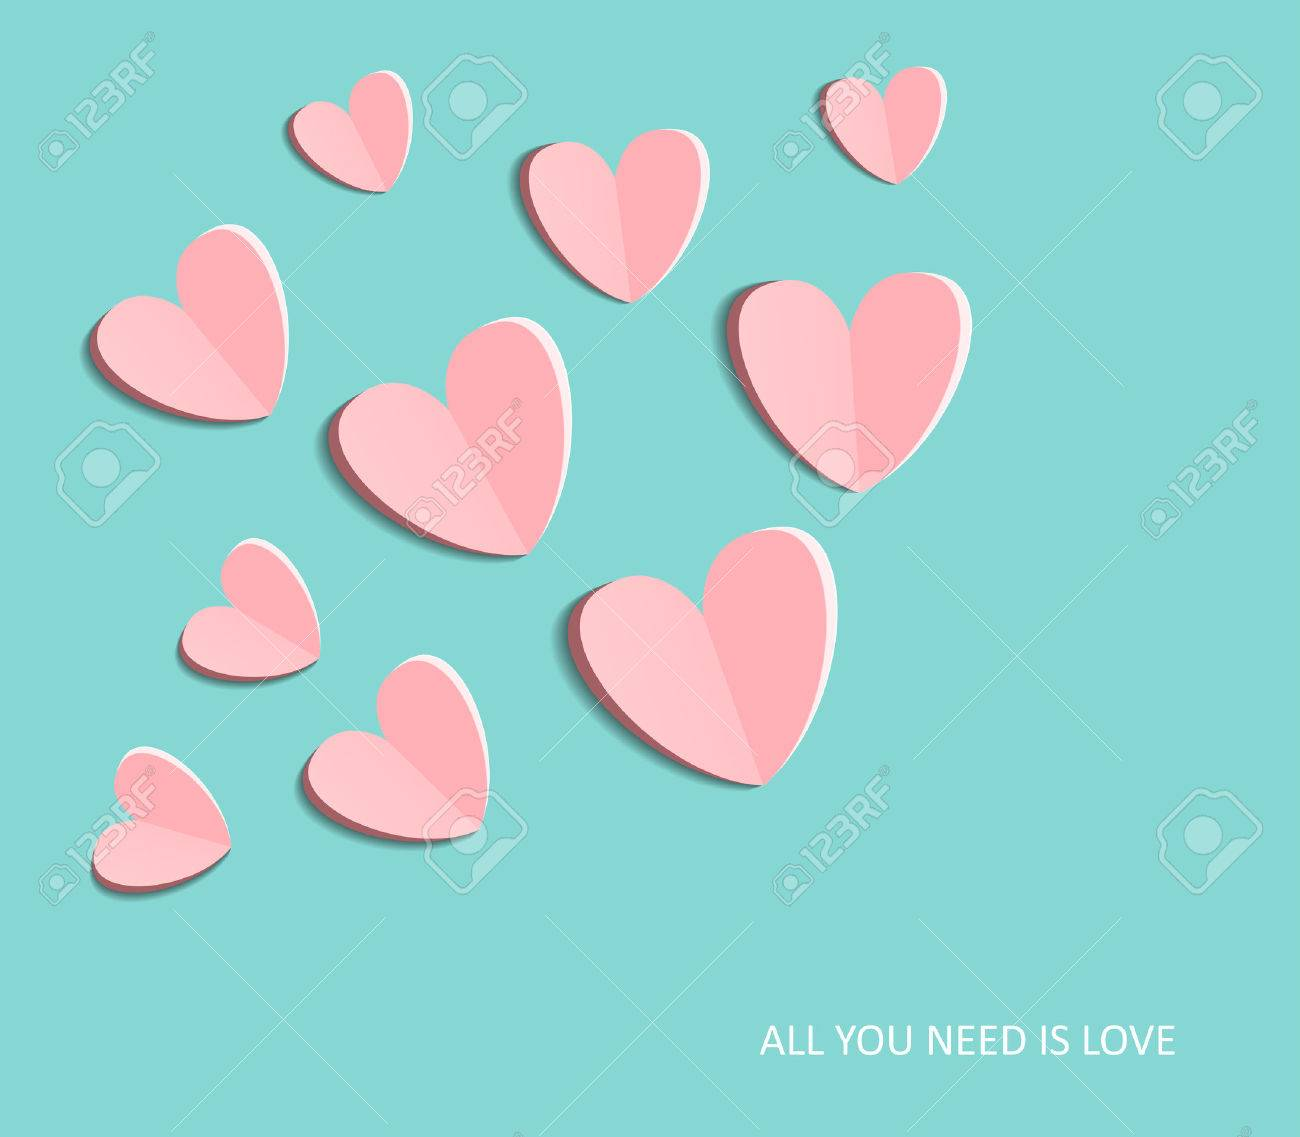 Symbol of love on sweet blue background, greeting card, Flat design Happy Valentines. can be add text. vector illustration - 48758295